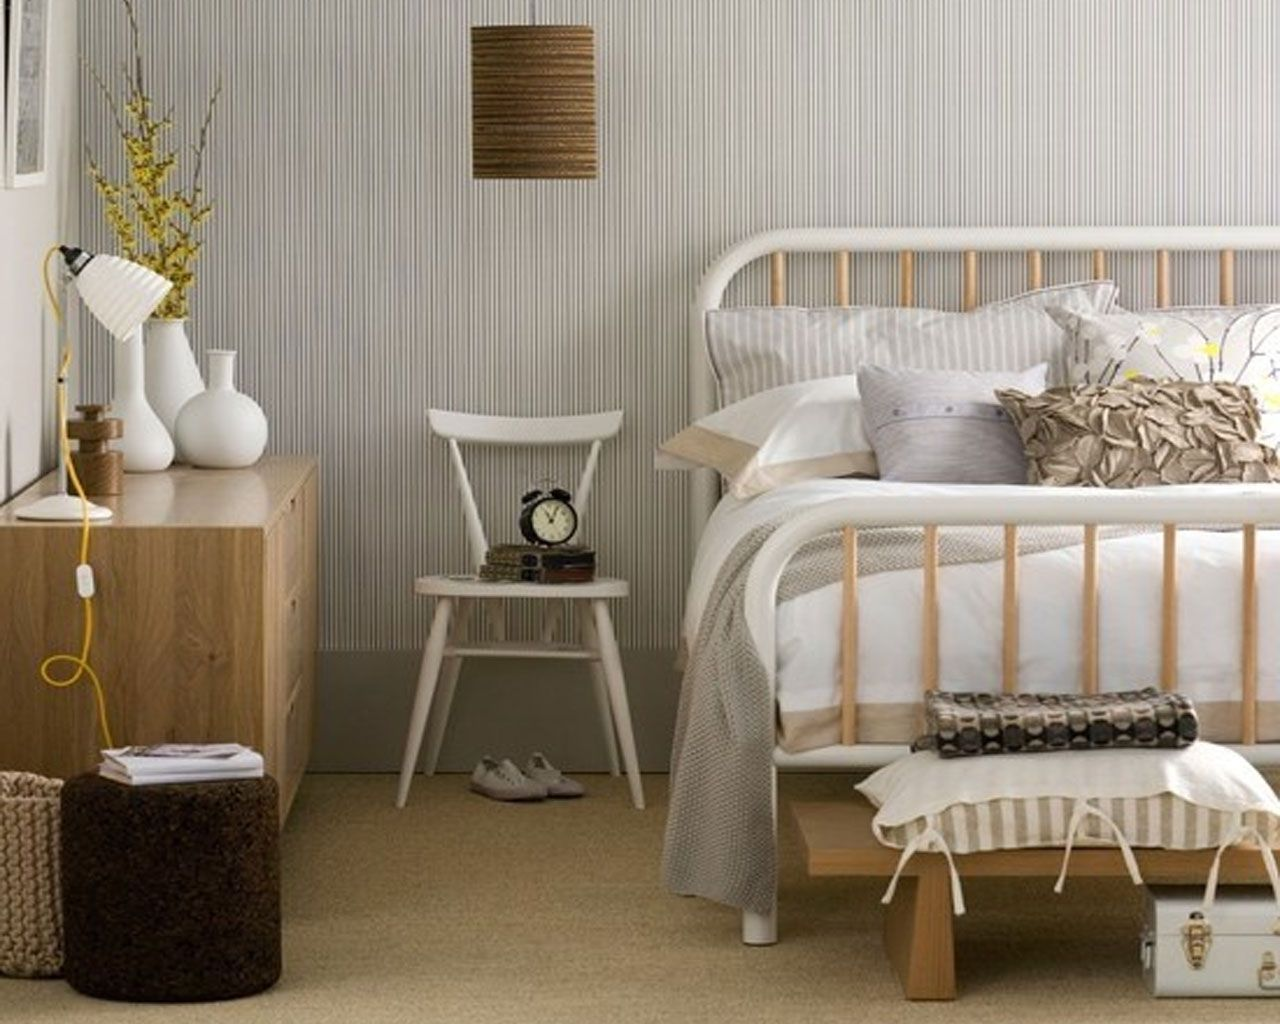 scandinavian bedroom furniture. nice scandinavian bedroom design with white frame bed and wooden storage idea furniture s